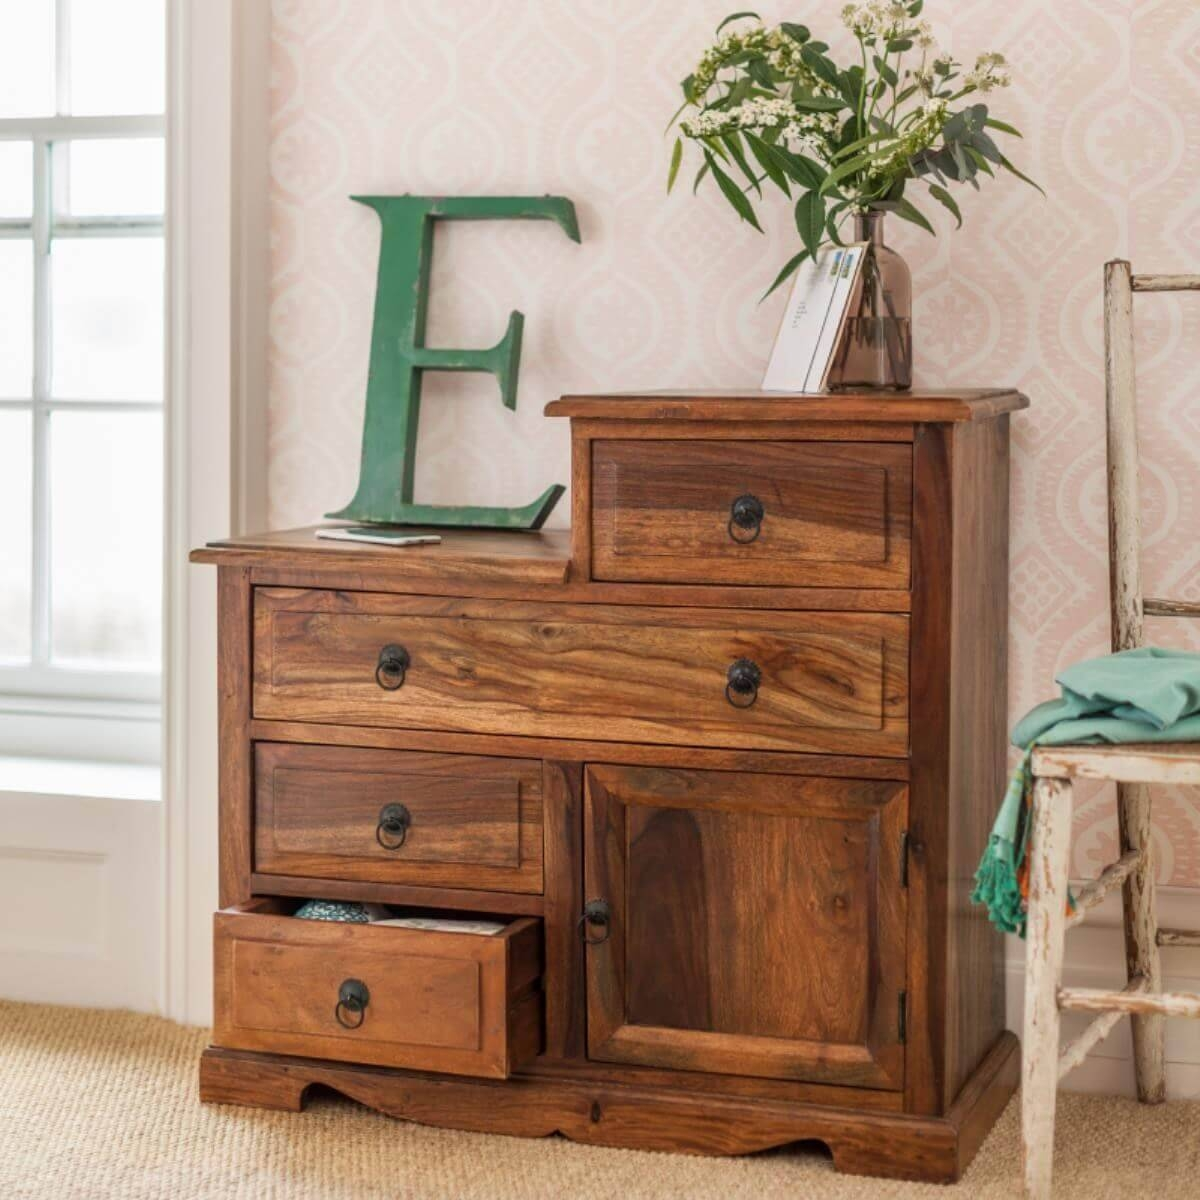 Sheesham Sideboard Units – The Furniture Co For Sheesham Sideboards (#14 of 20)